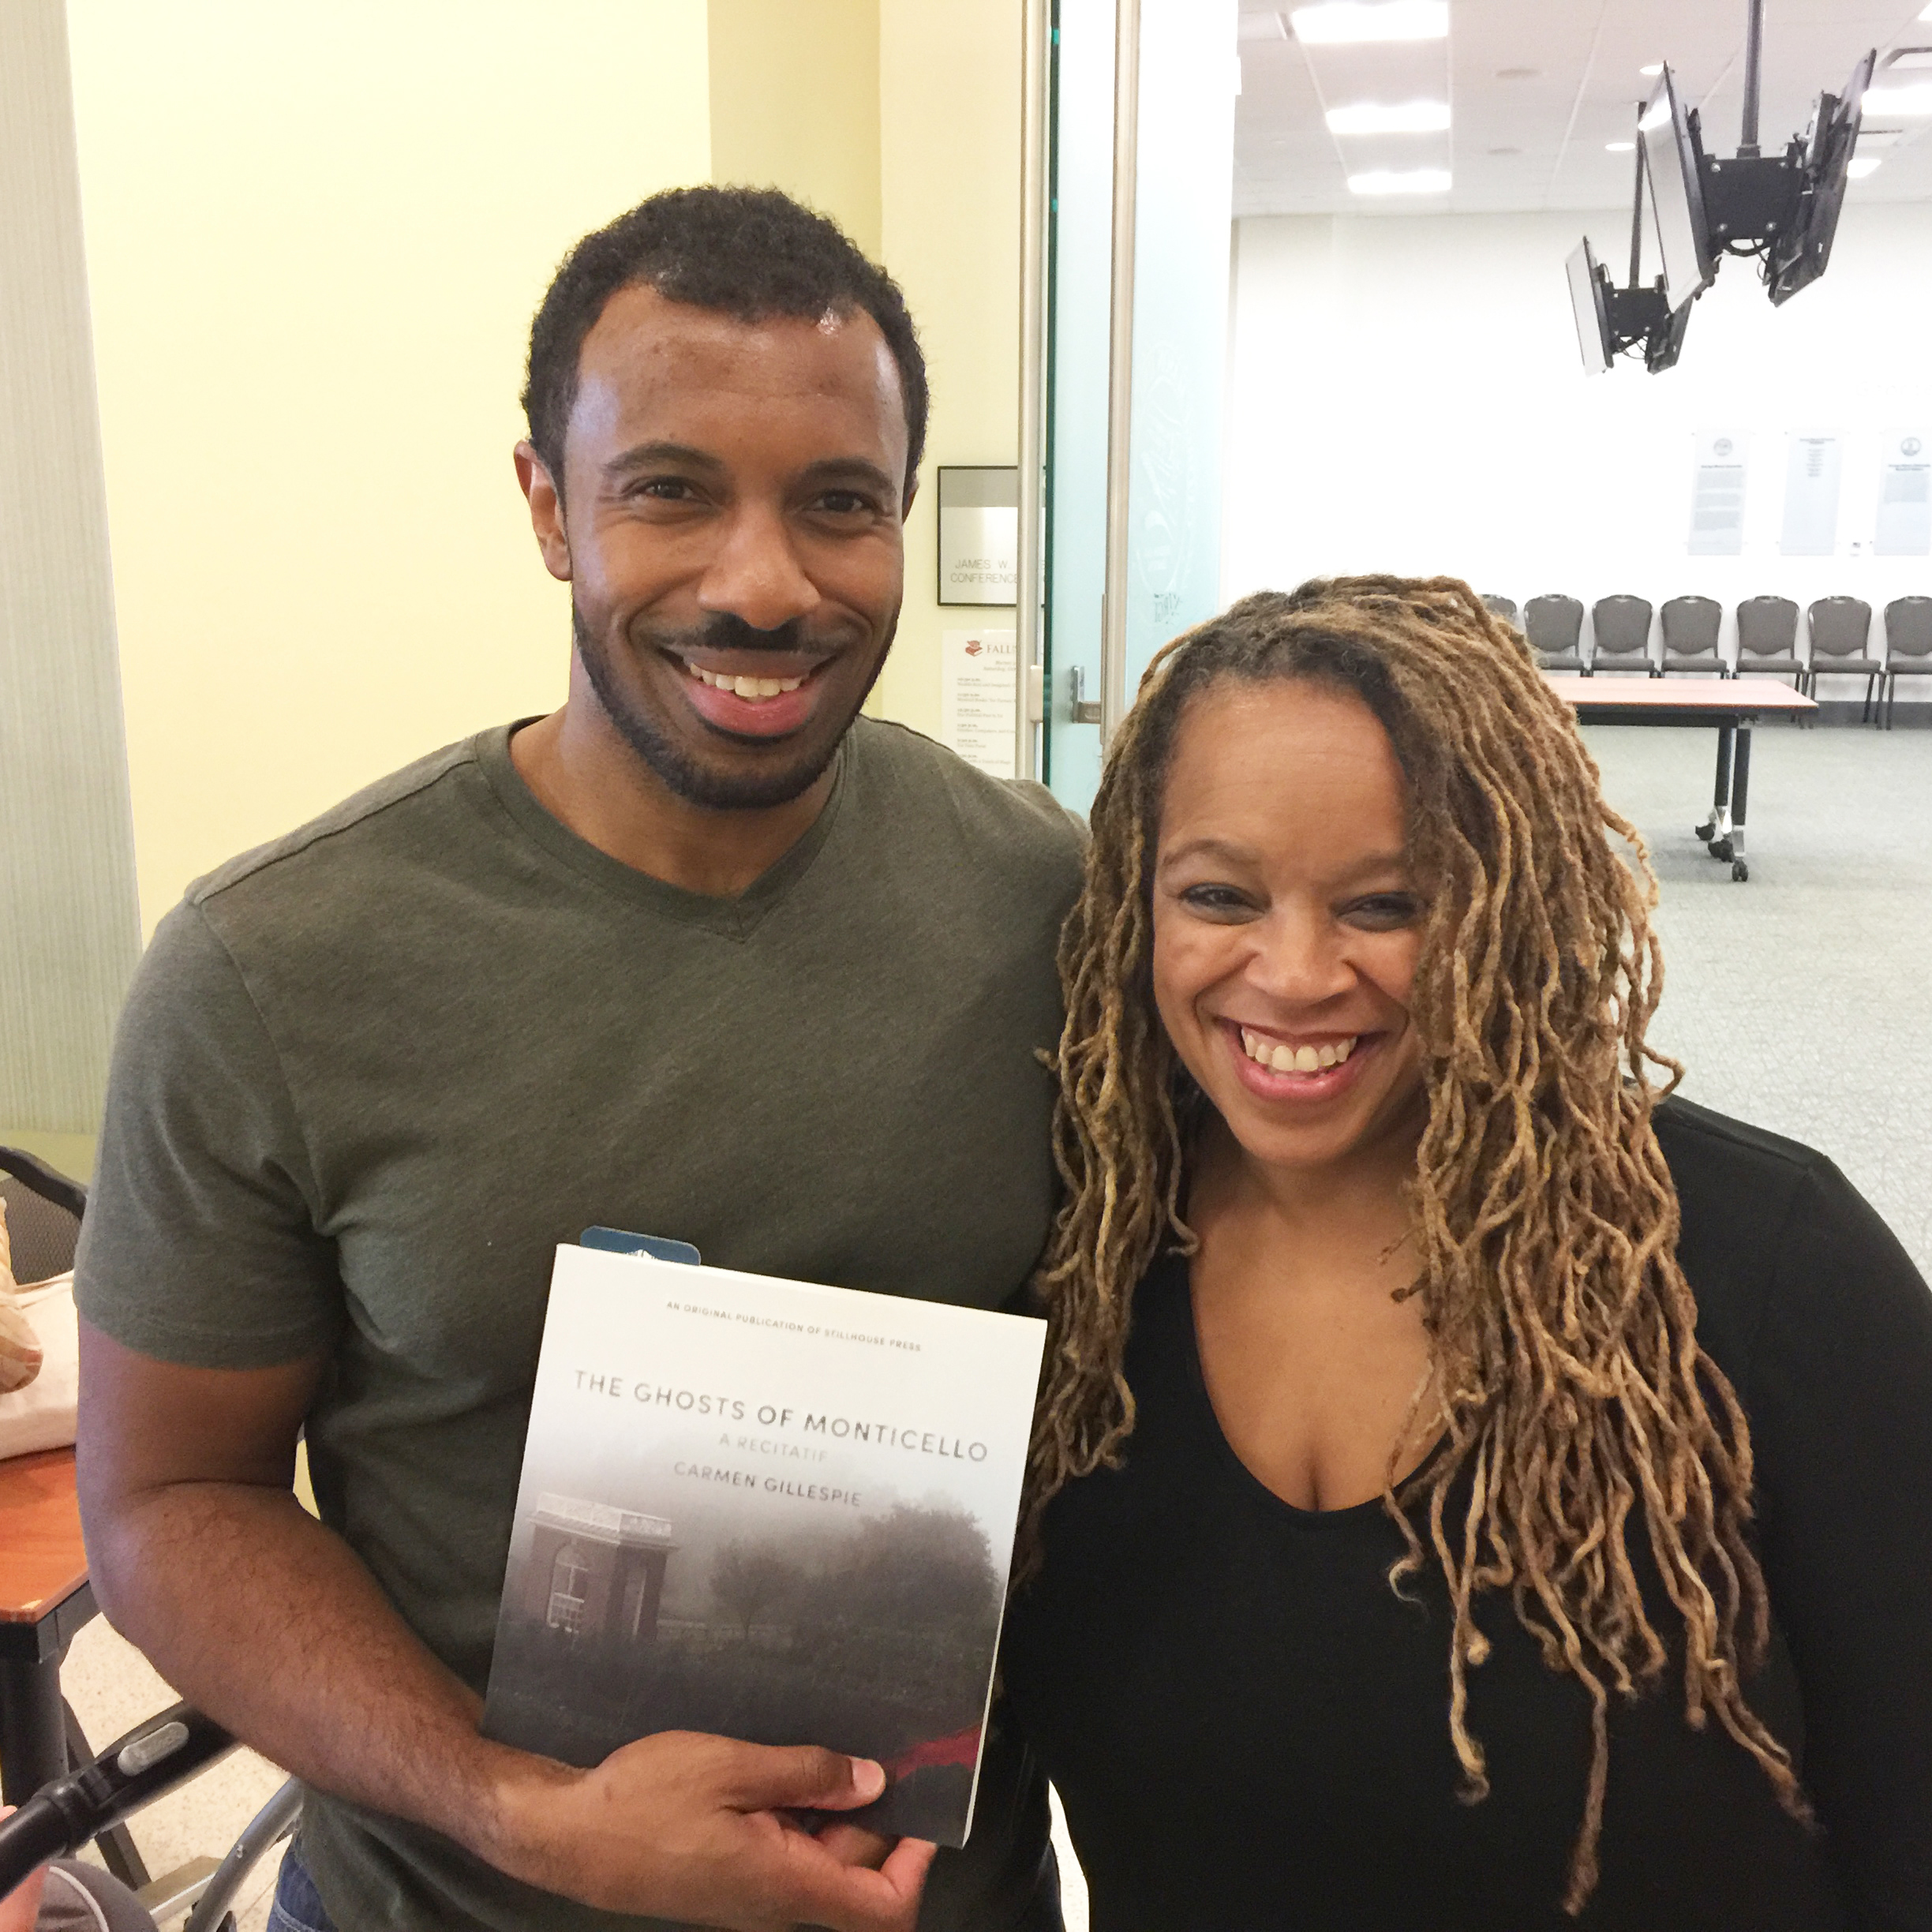 Kyle Dargan & Carmen Gillespie celebrating the release of  The Ghosts of Monticello,  Oct. 2017